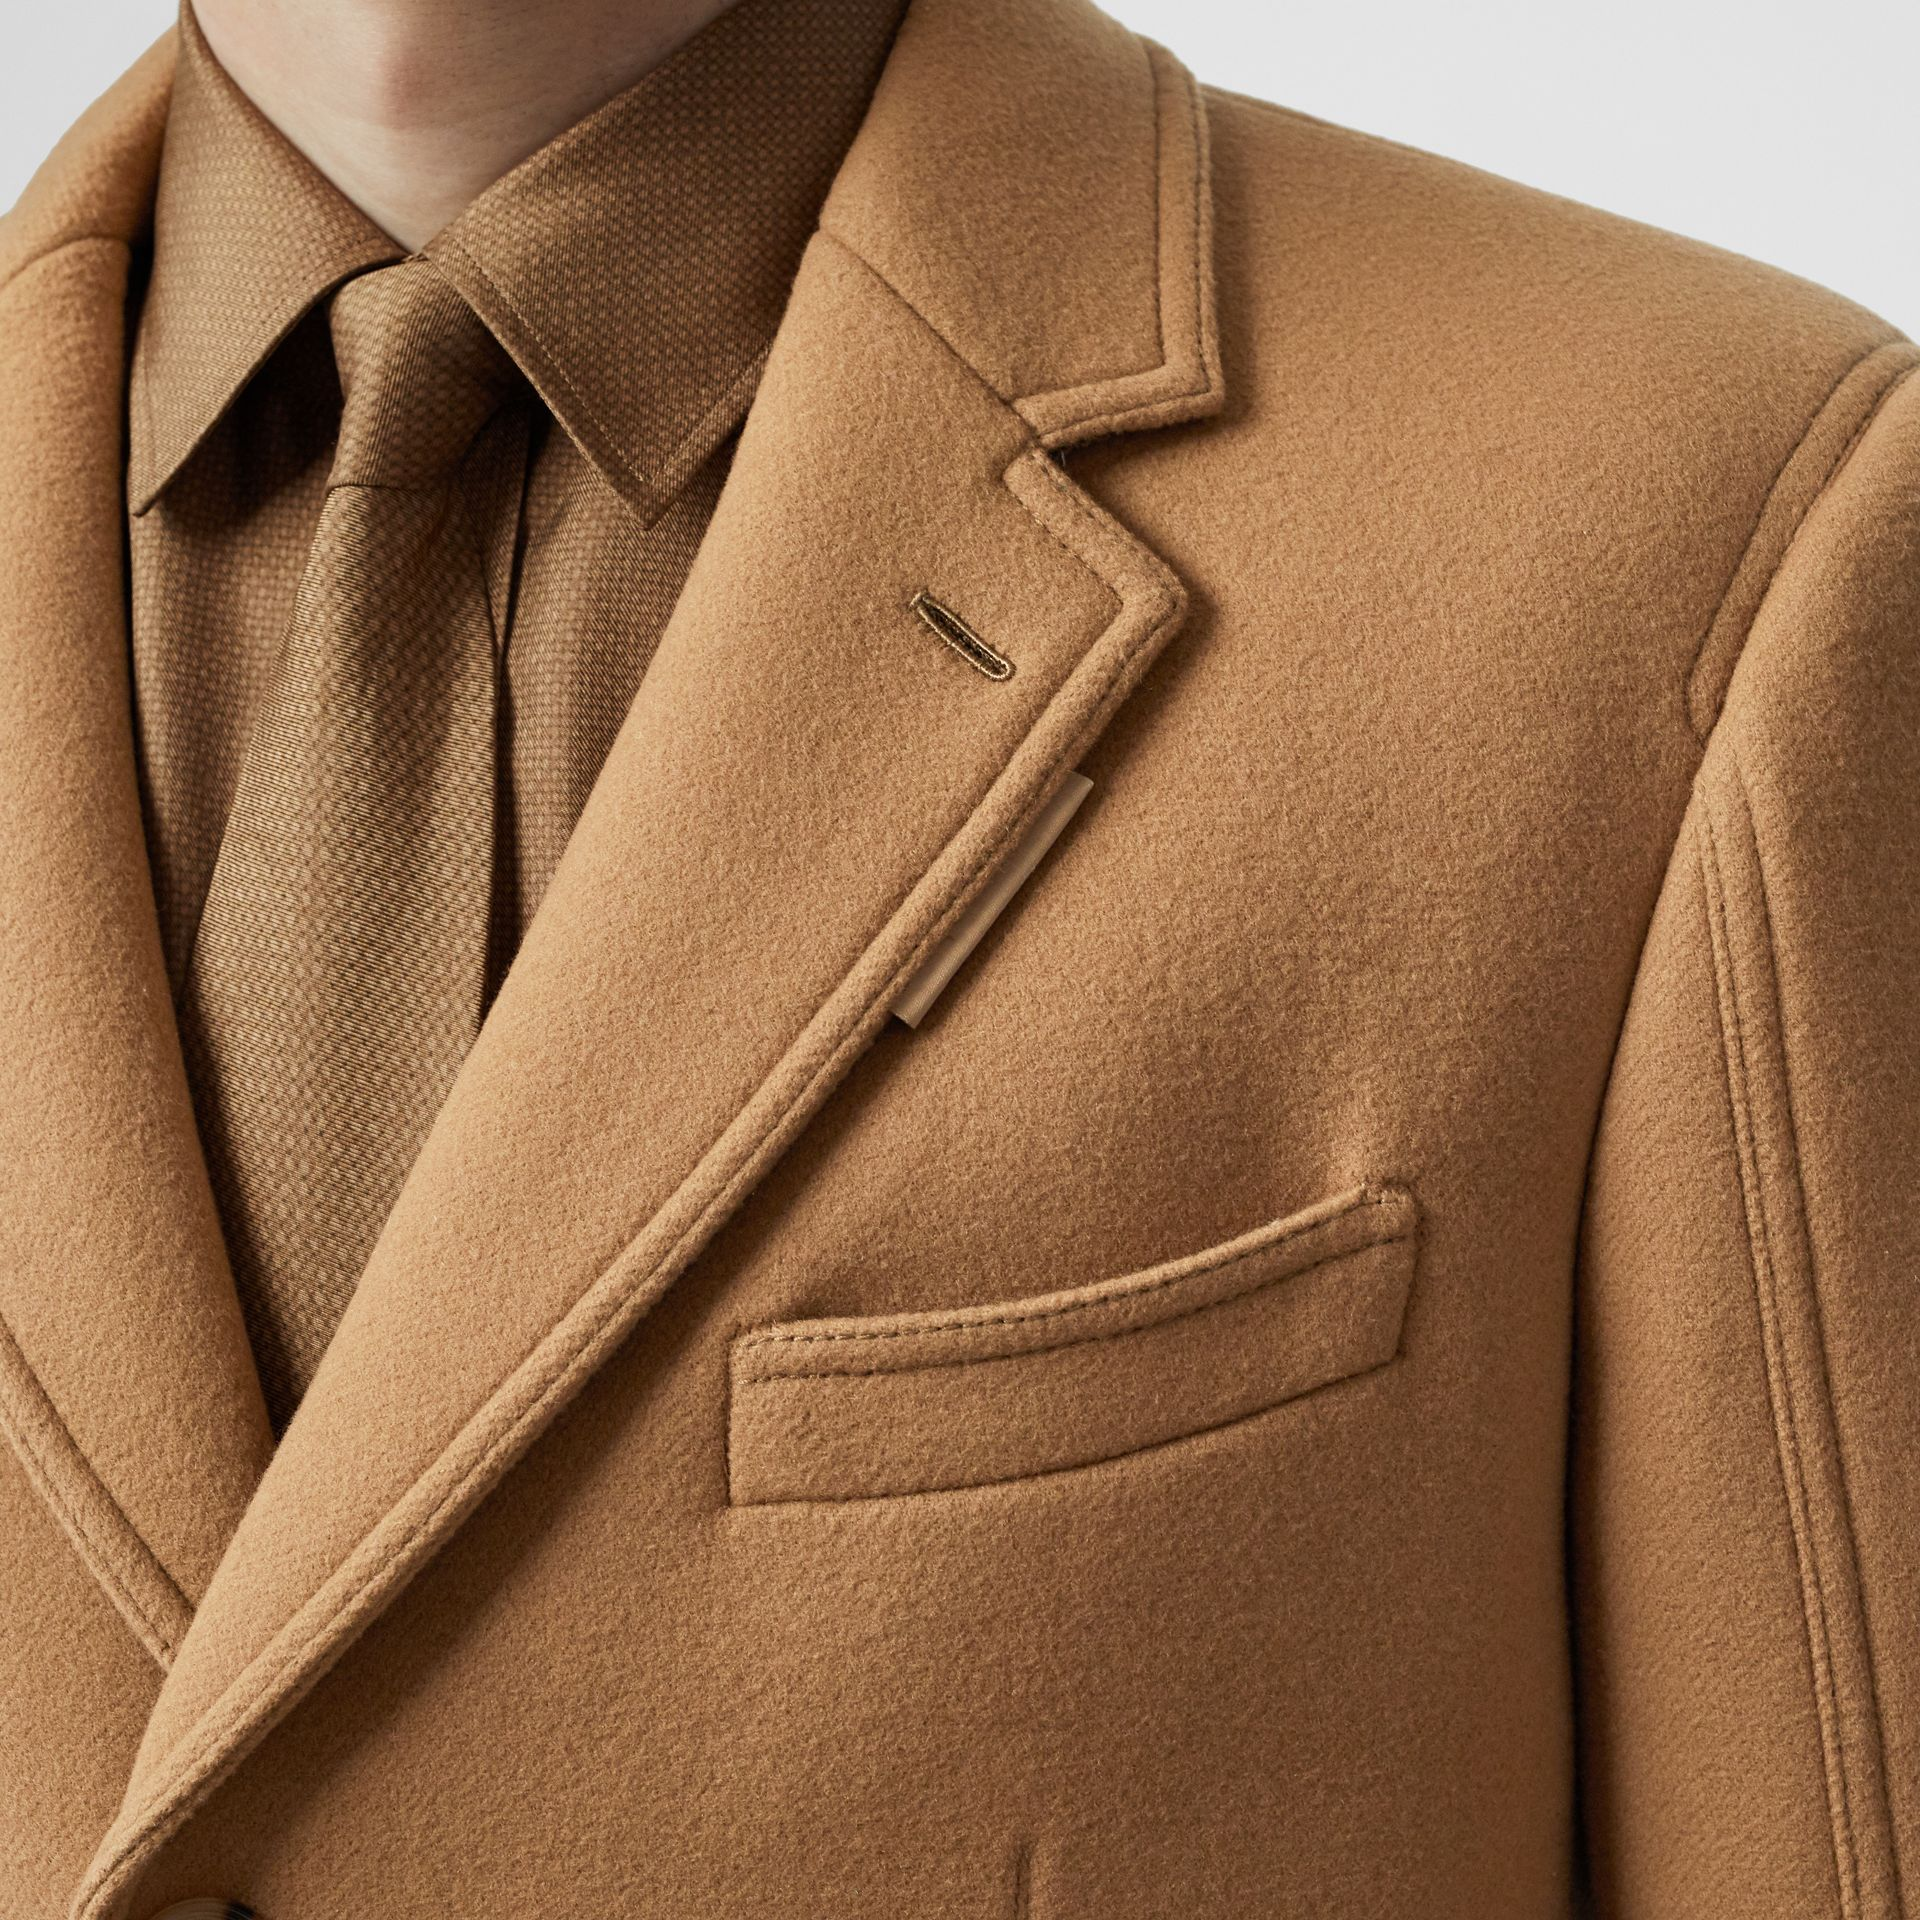 Zip Detail Wool Tailored Coat in Warm Camel - Men | Burberry United Kingdom - gallery image 4